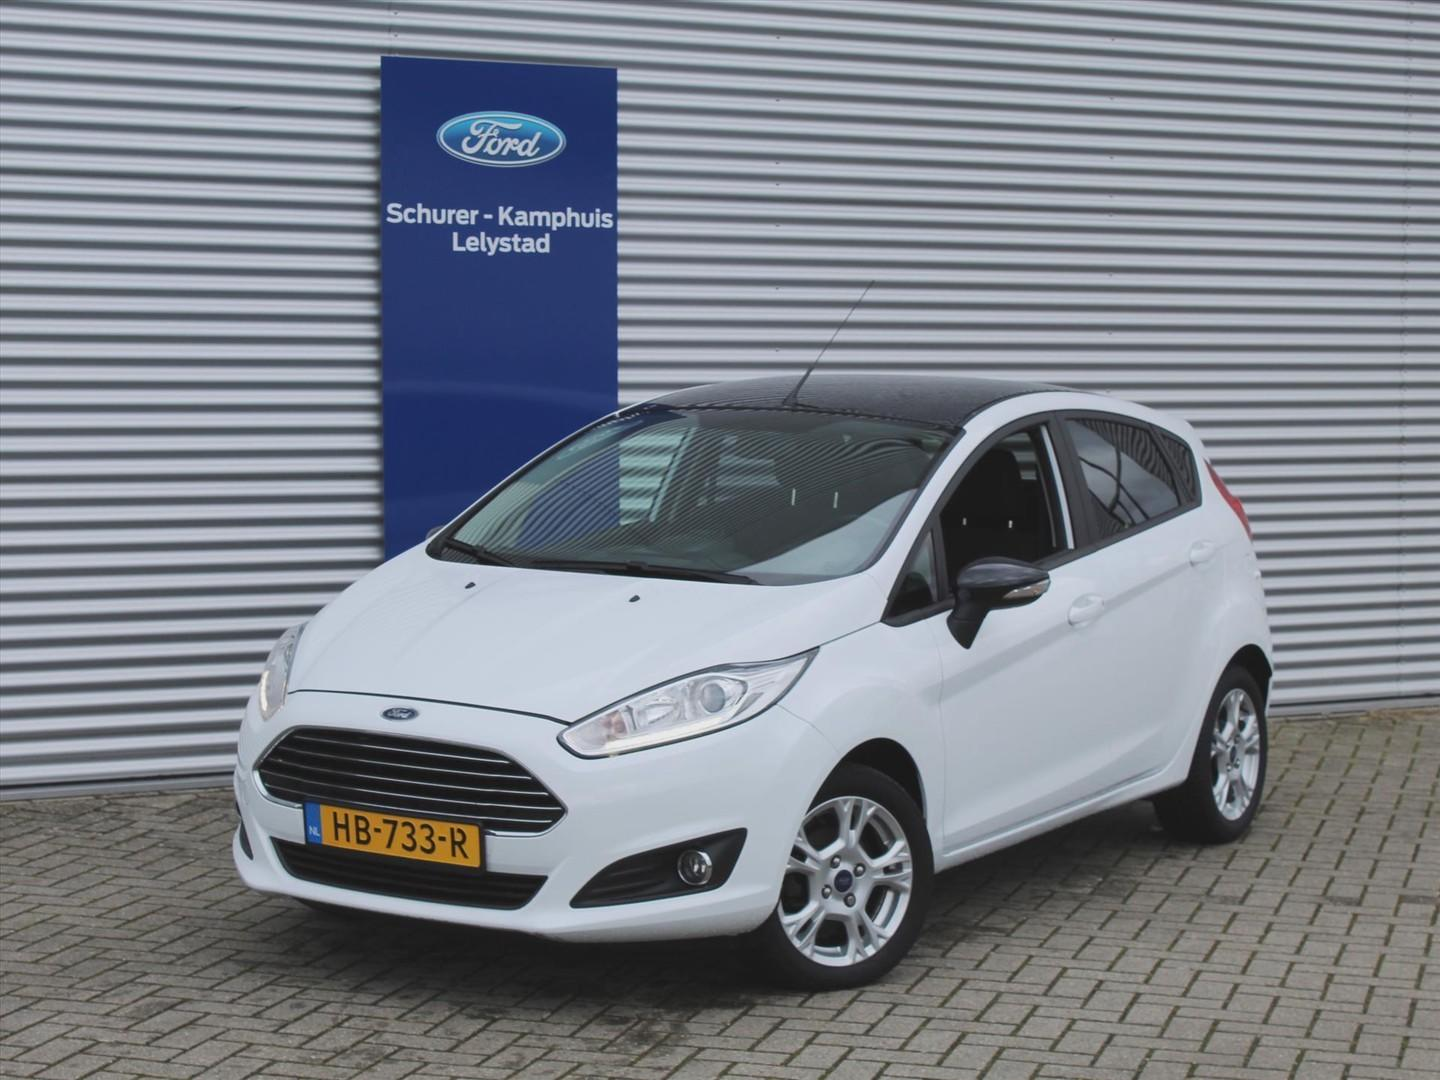 Ford Fiesta 1.0 (65pk) black & white edition 5-drs